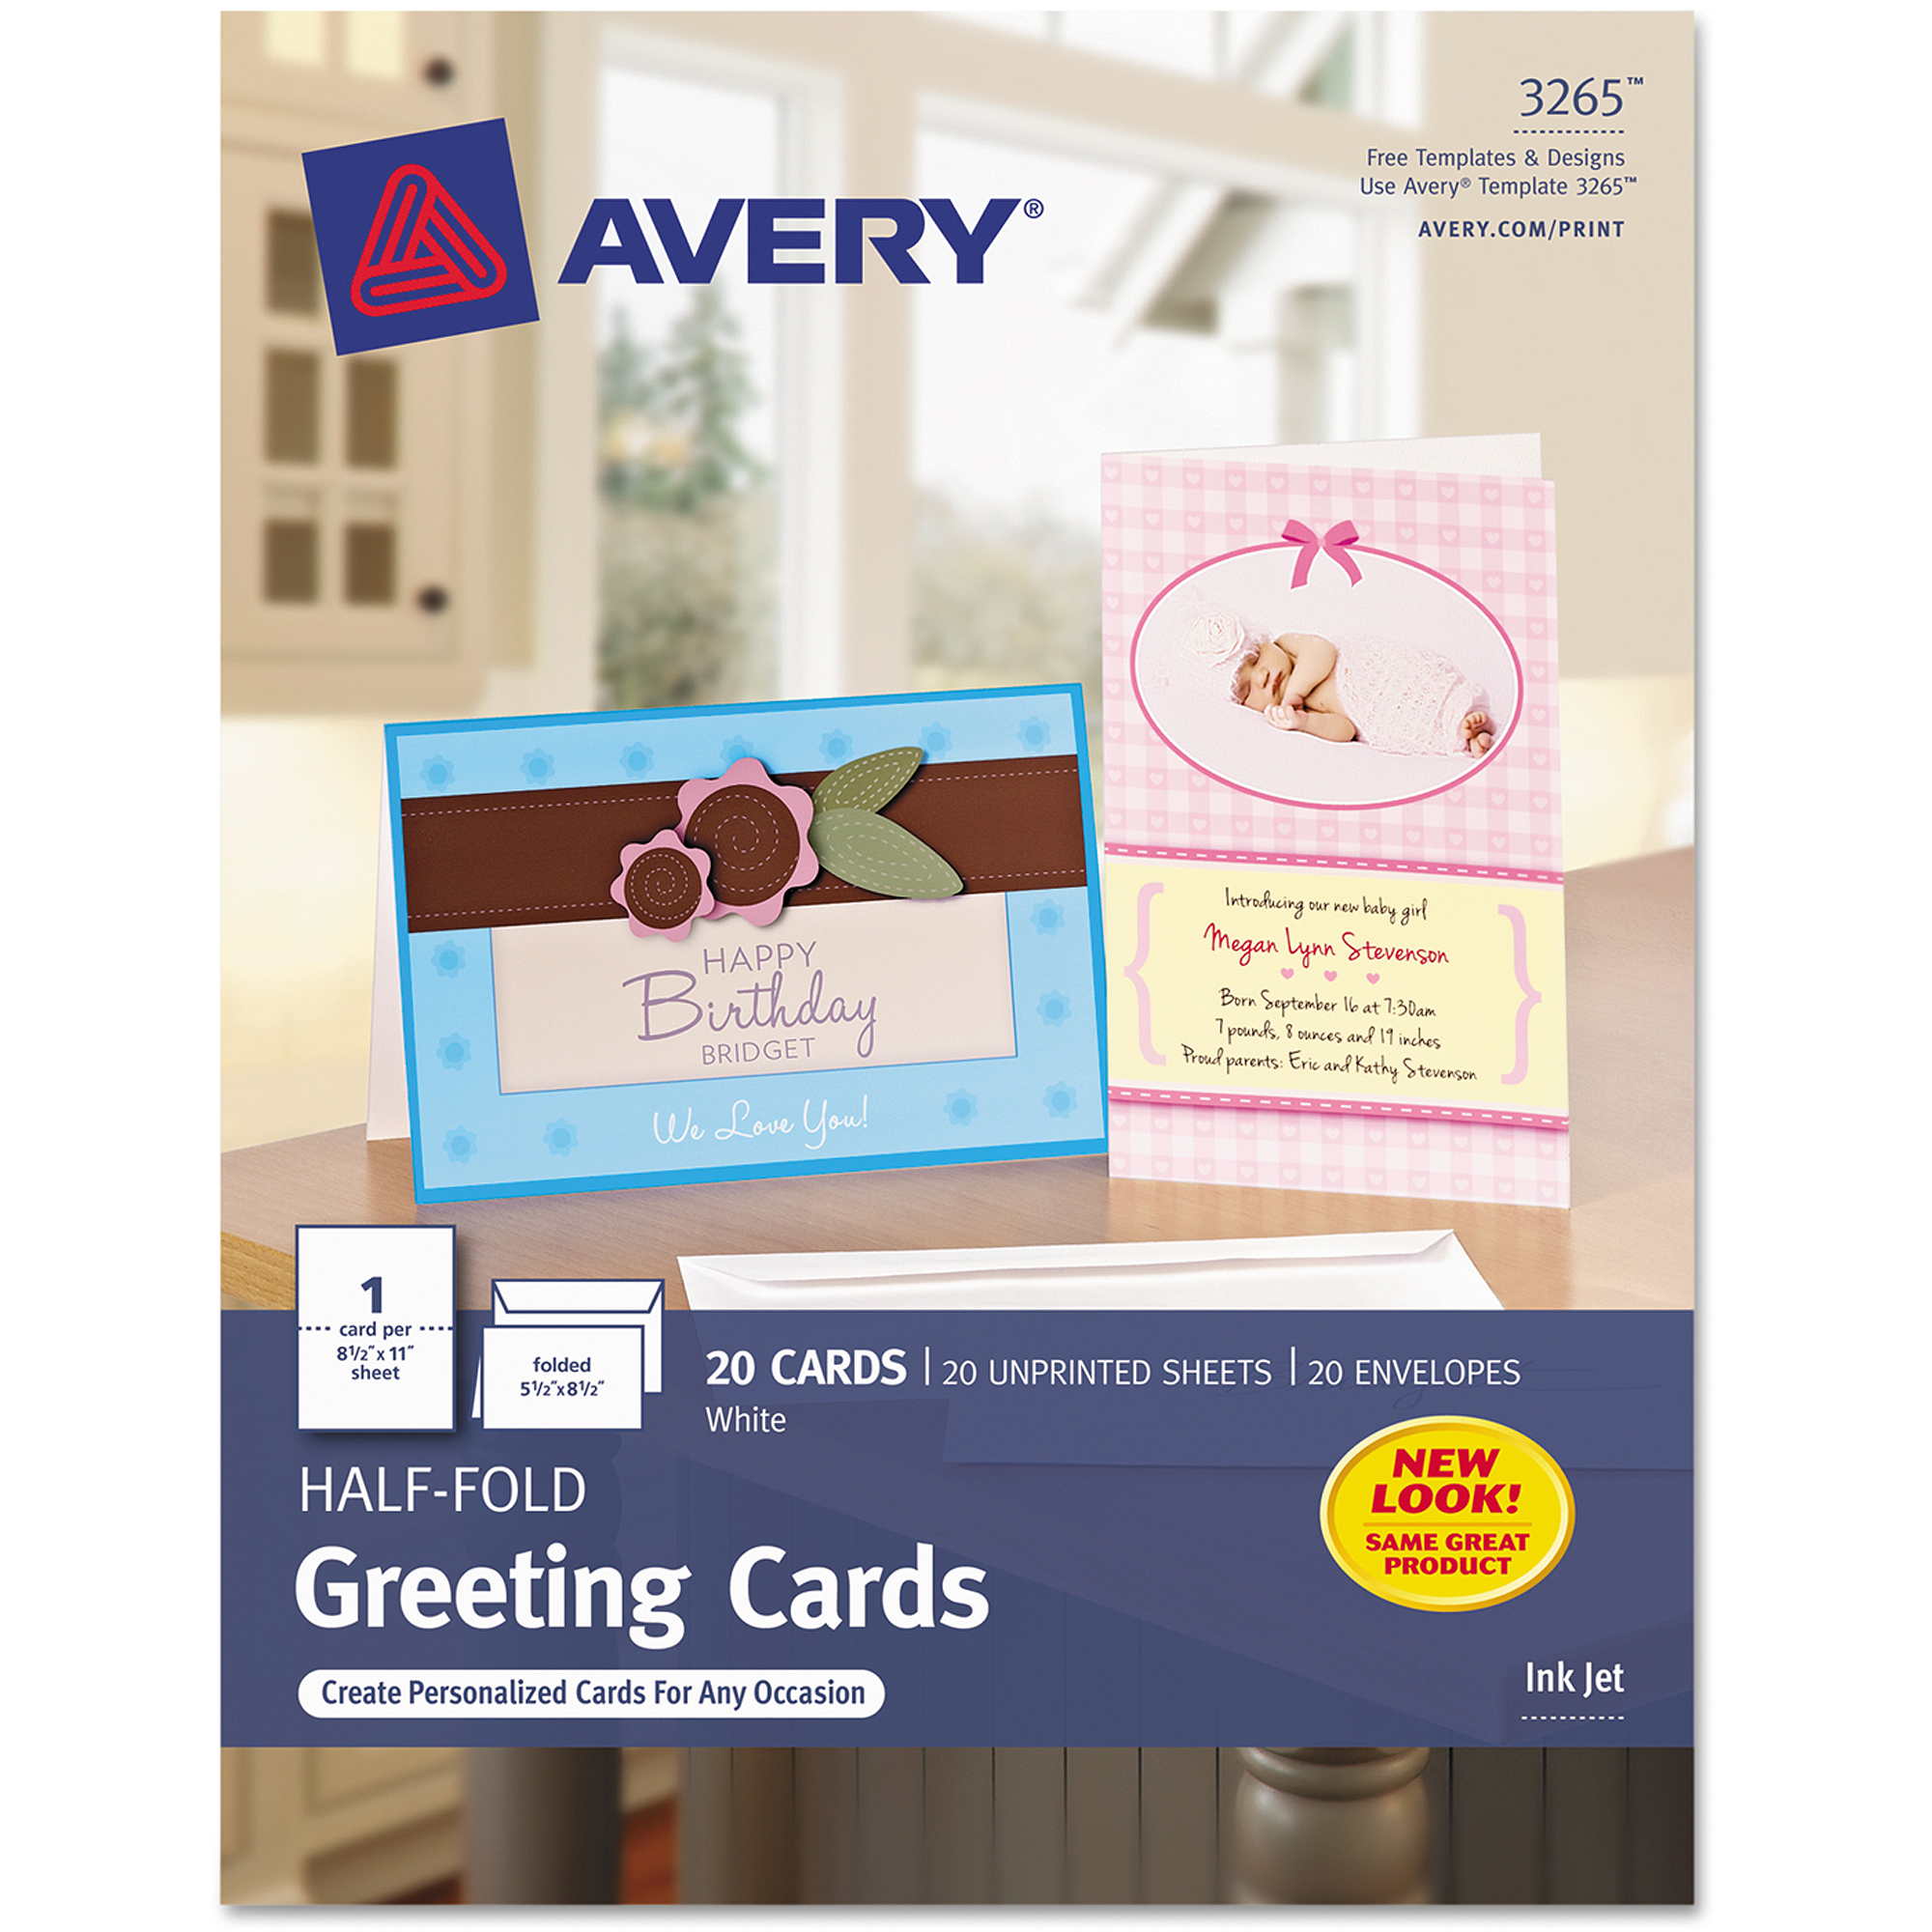 "Avery Half-Fold 5-1/2"" x 8-1/2"" Greeting Cards, Matte White, Box of 20"